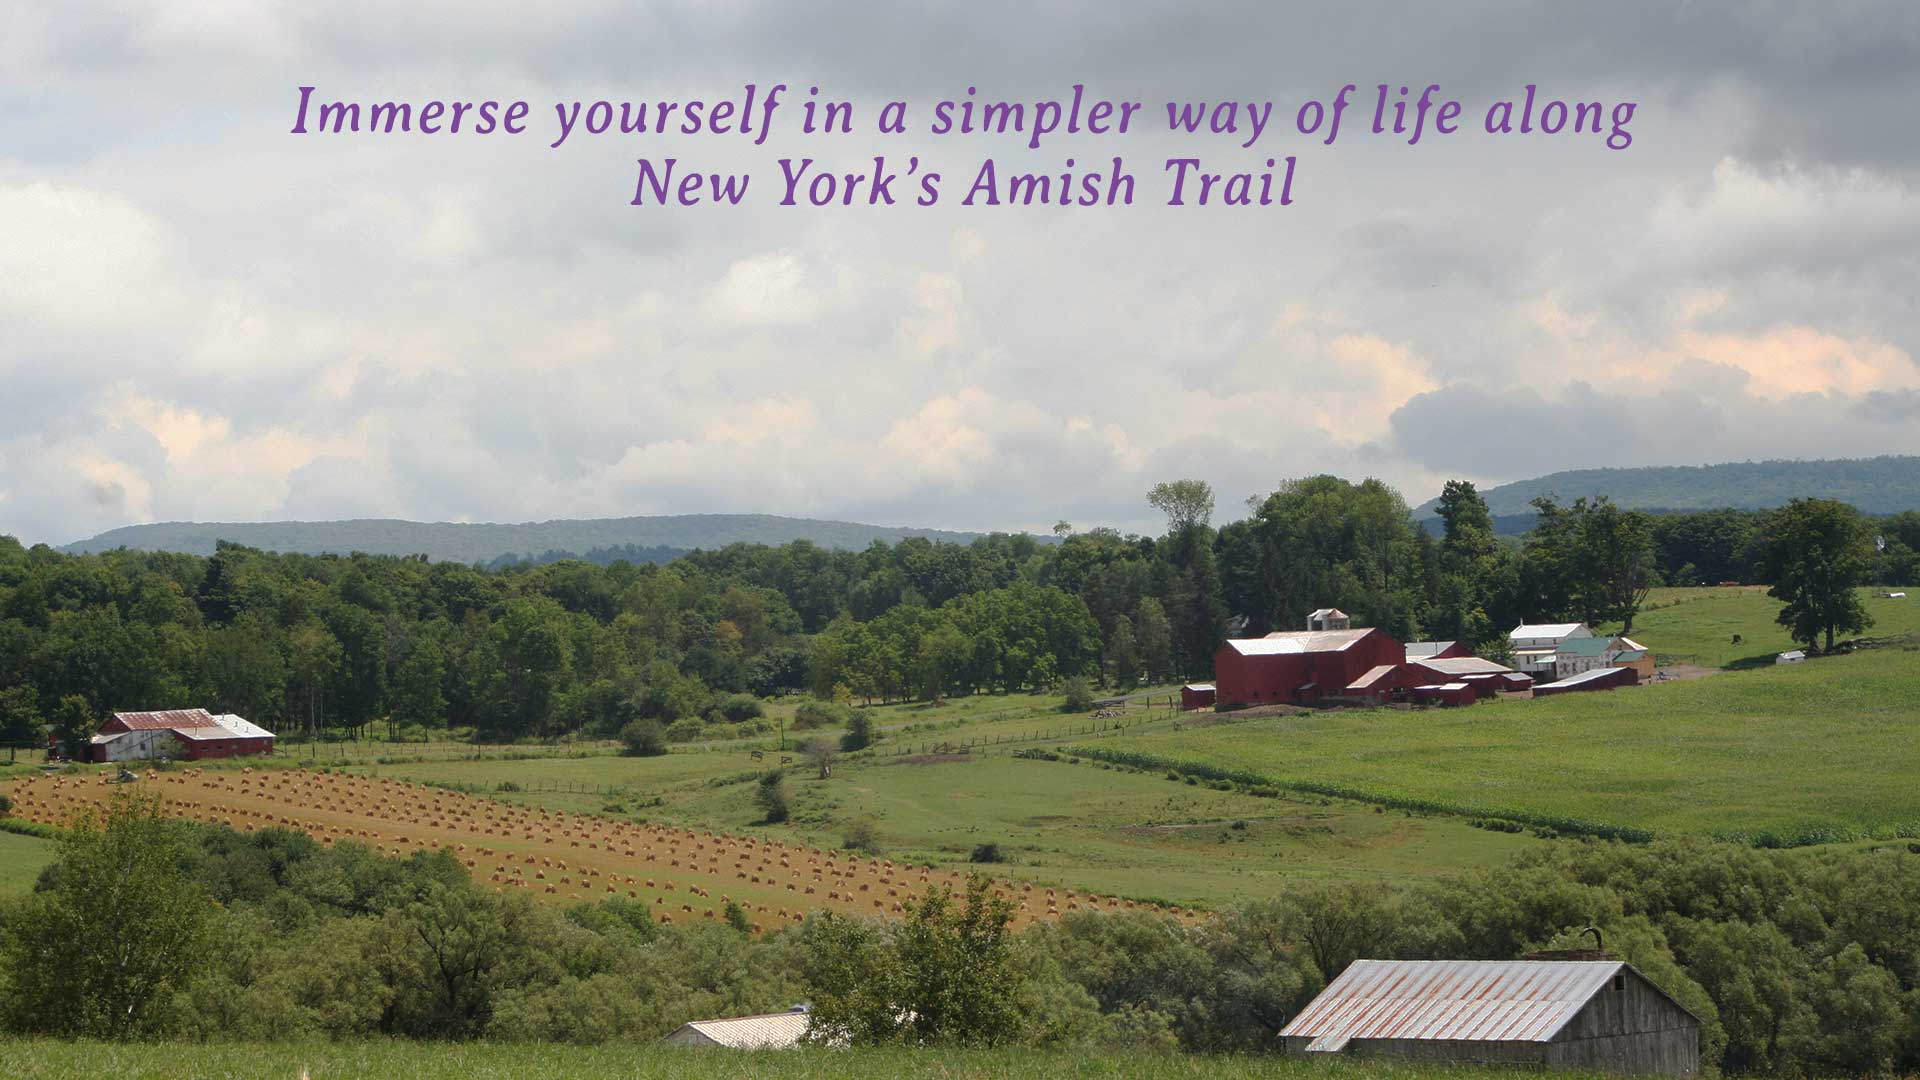 Immerse Yourself in a Simpler Way of Life along NY's Amish Trail